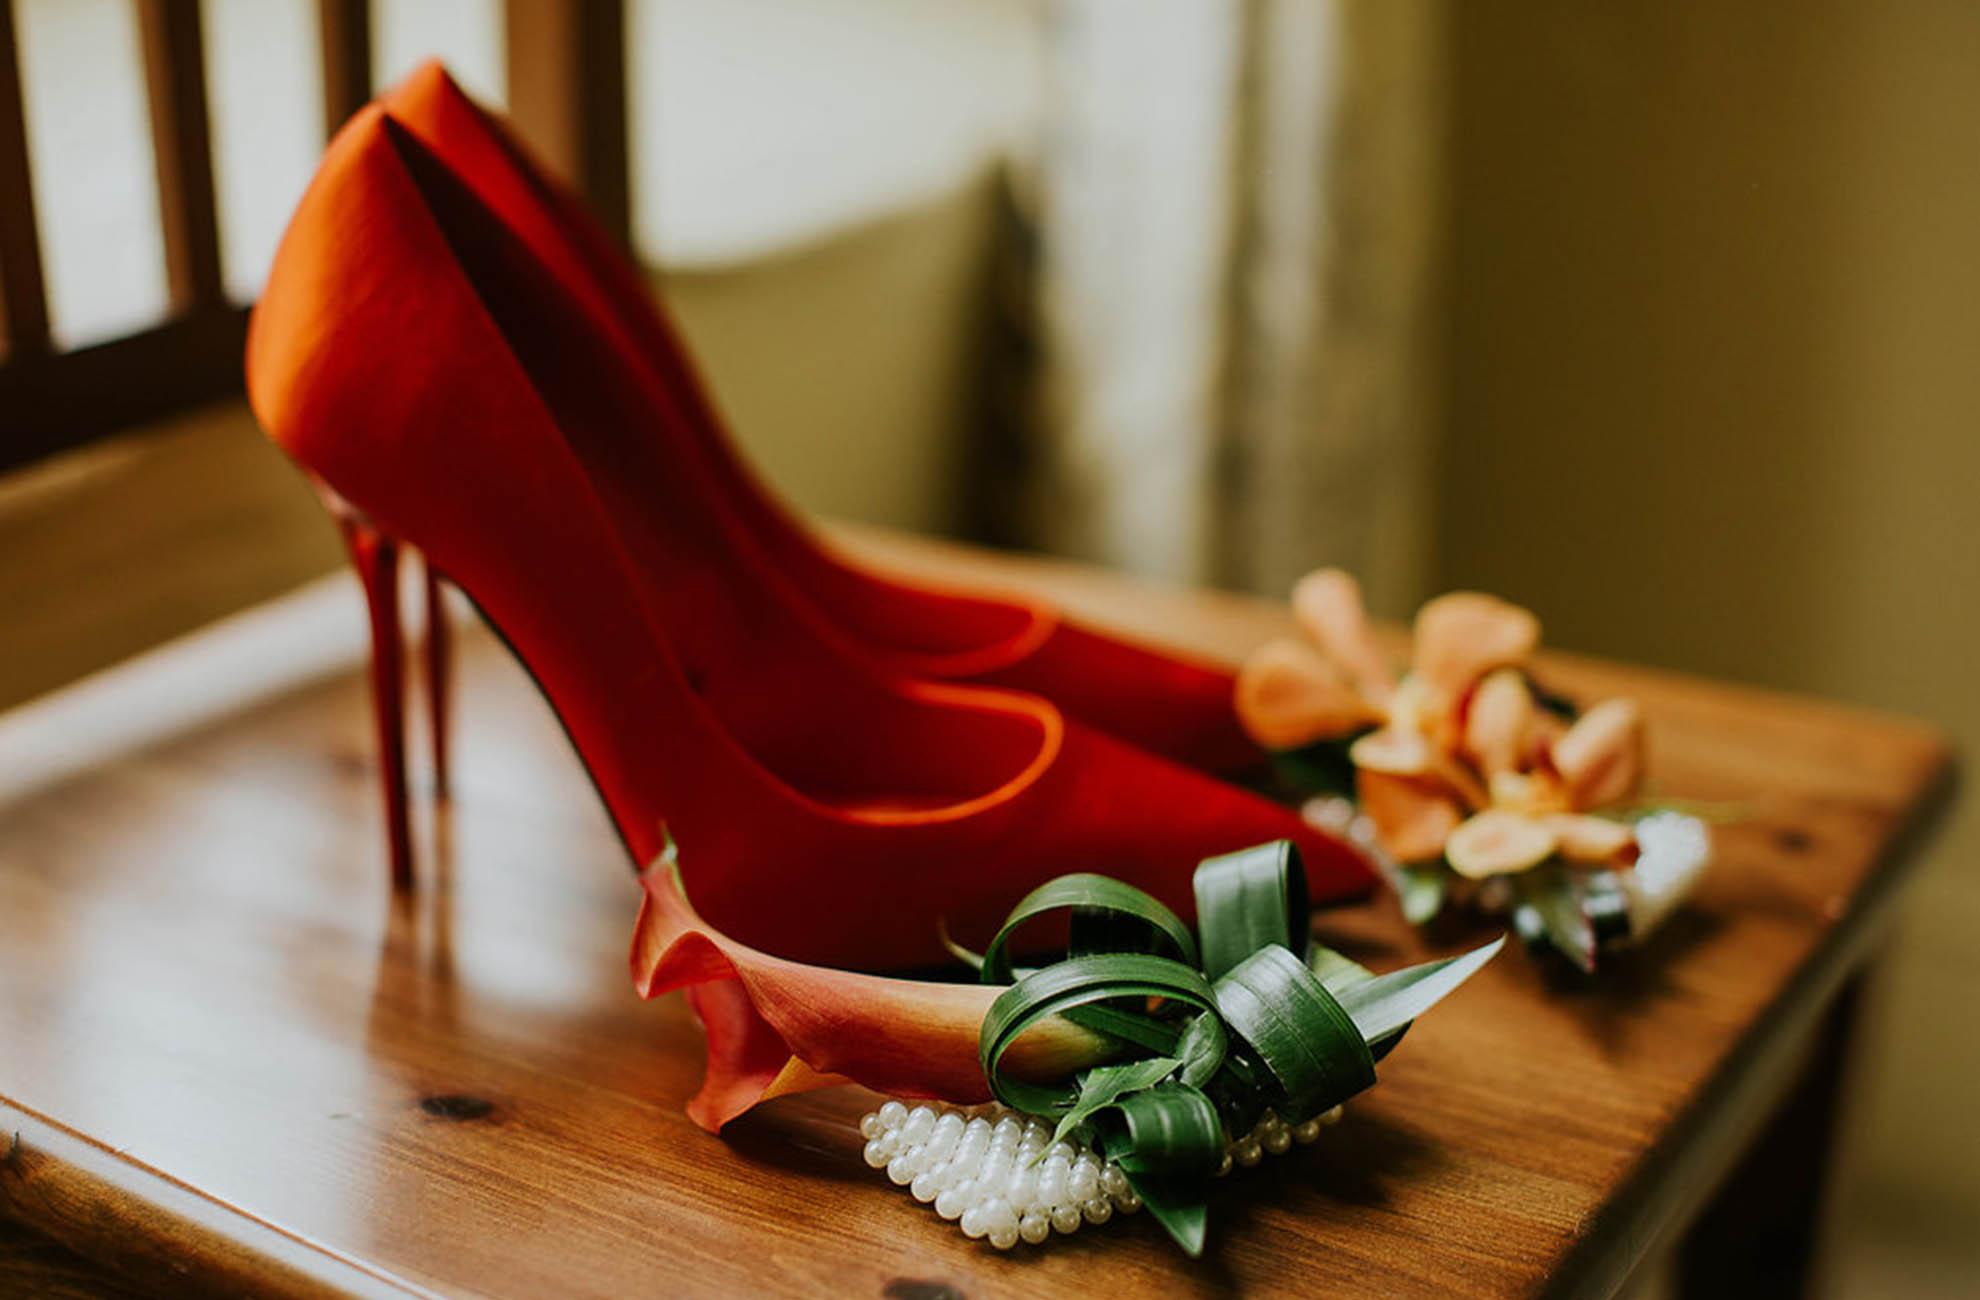 The bride wore orange wedding shoes to match the theme of her day at Combermere Abbey